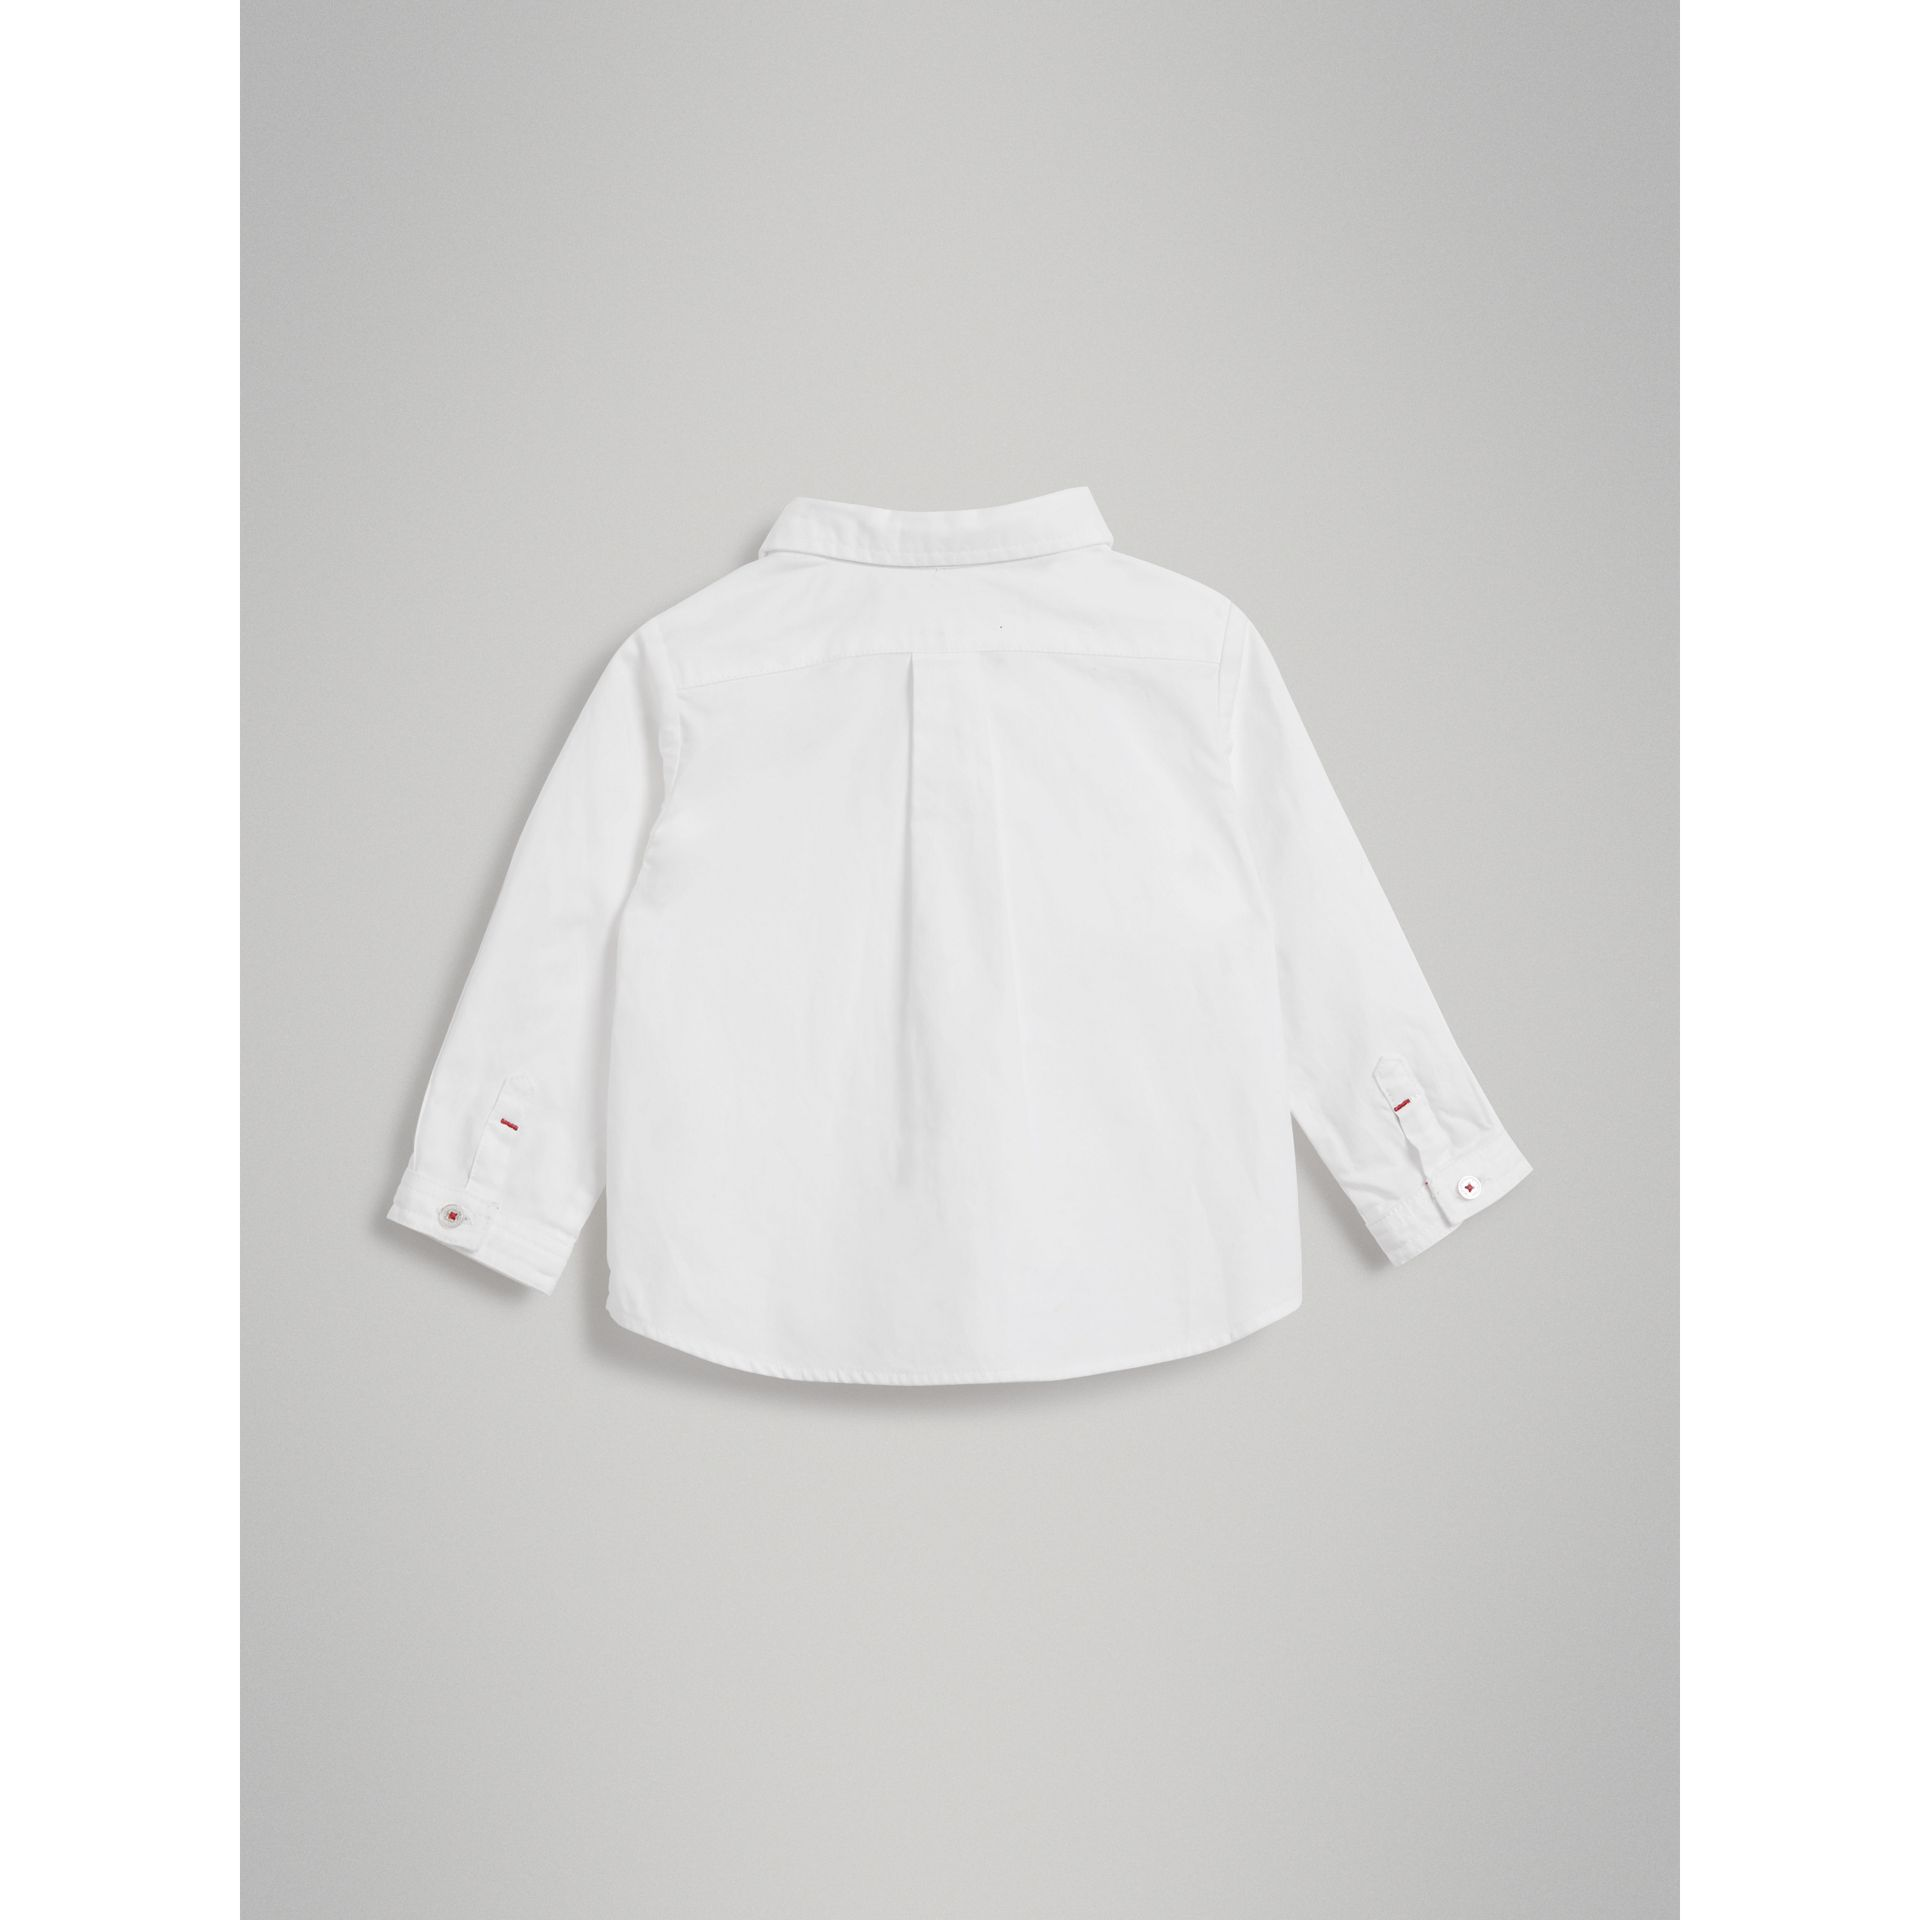 Cotton Oxford Shirt in White | Burberry - gallery image 3